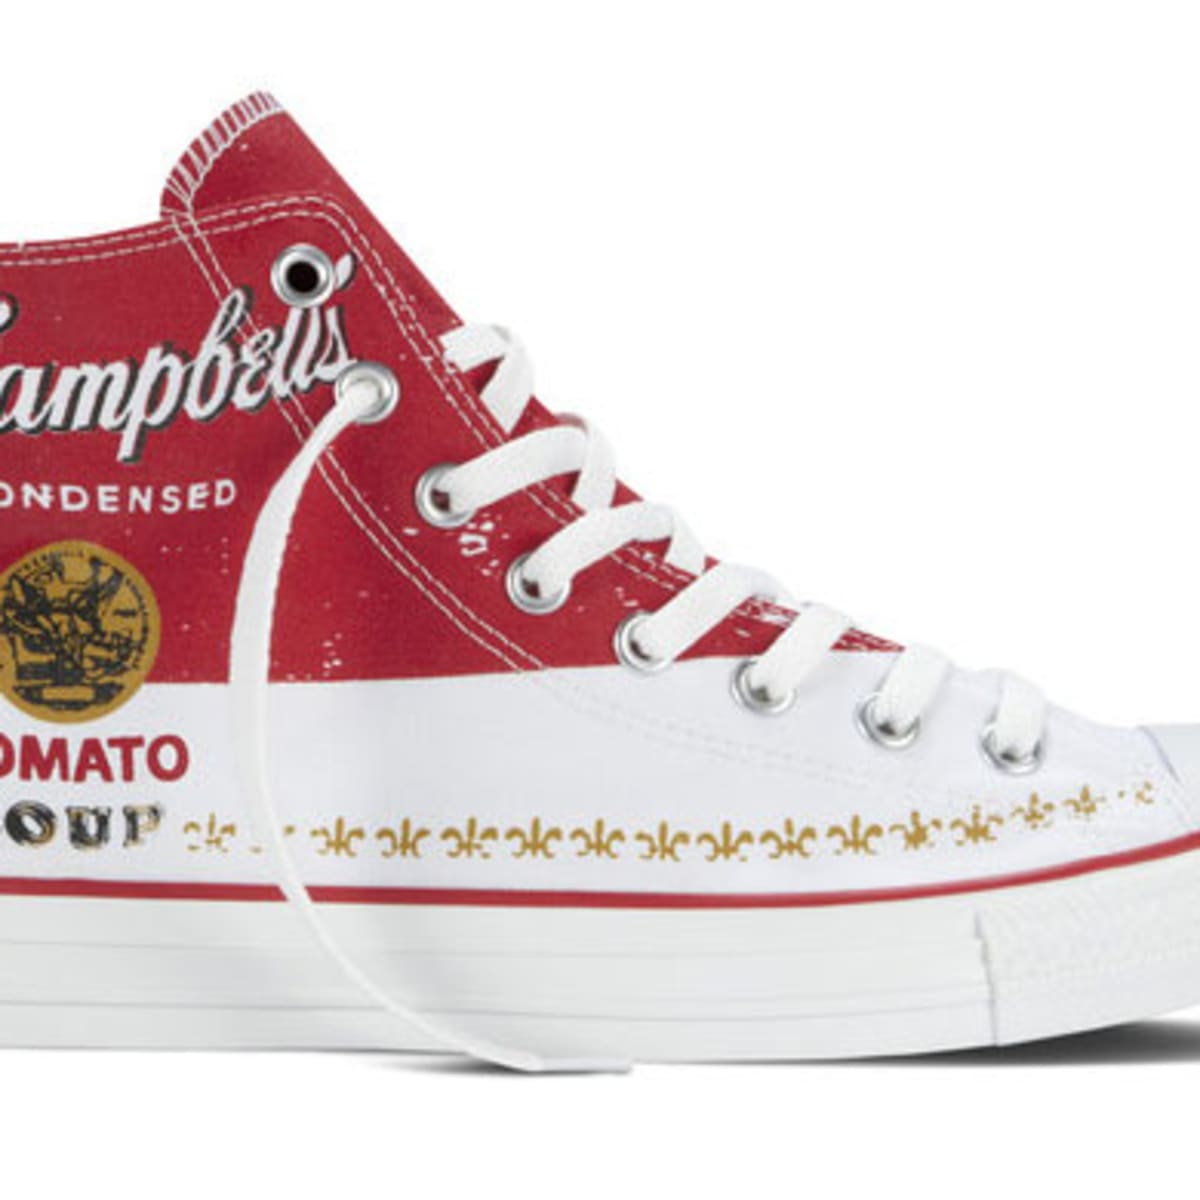 10 of the Most Memorable Converse Chuck